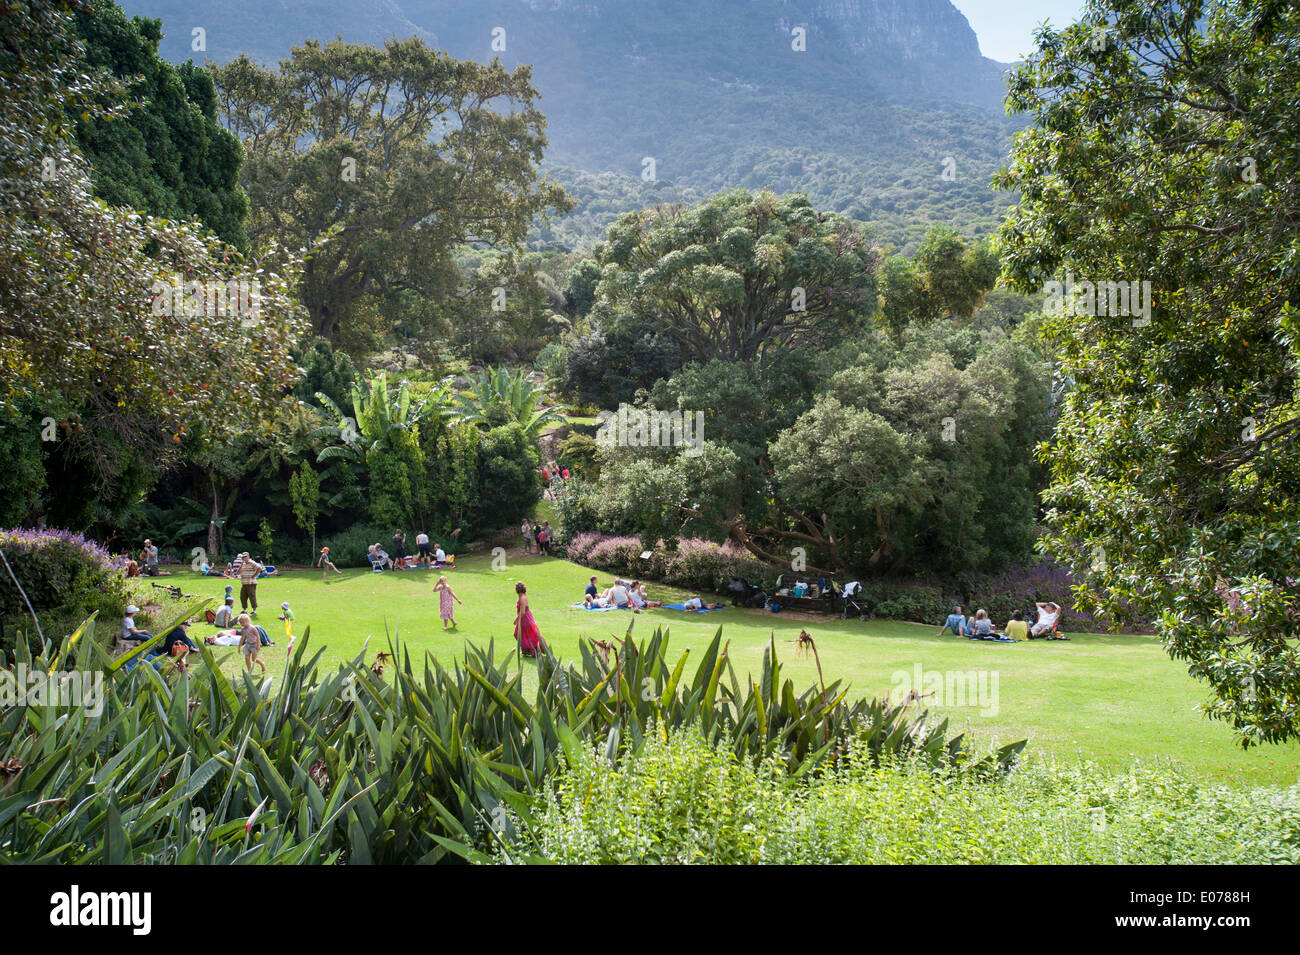 Visitors picnicking in Kirstenbosch botanical garden, Cape Town, South Africa - Stock Image